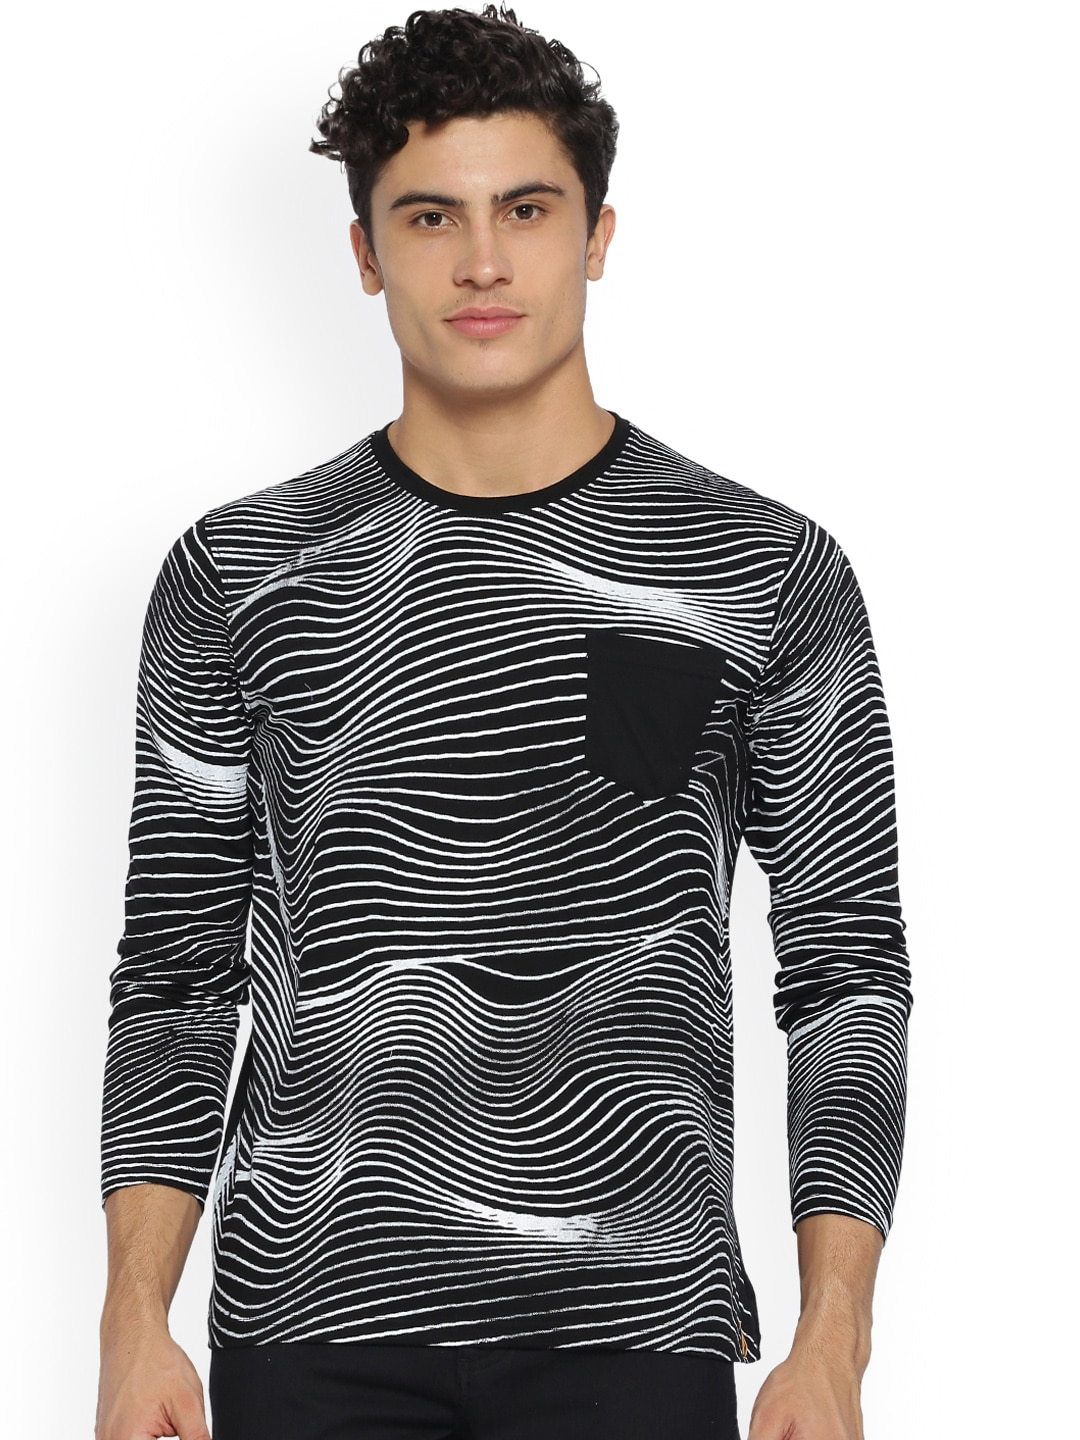 c6320b215ce Men T-shirts - Buy T-shirt for Men Online in India